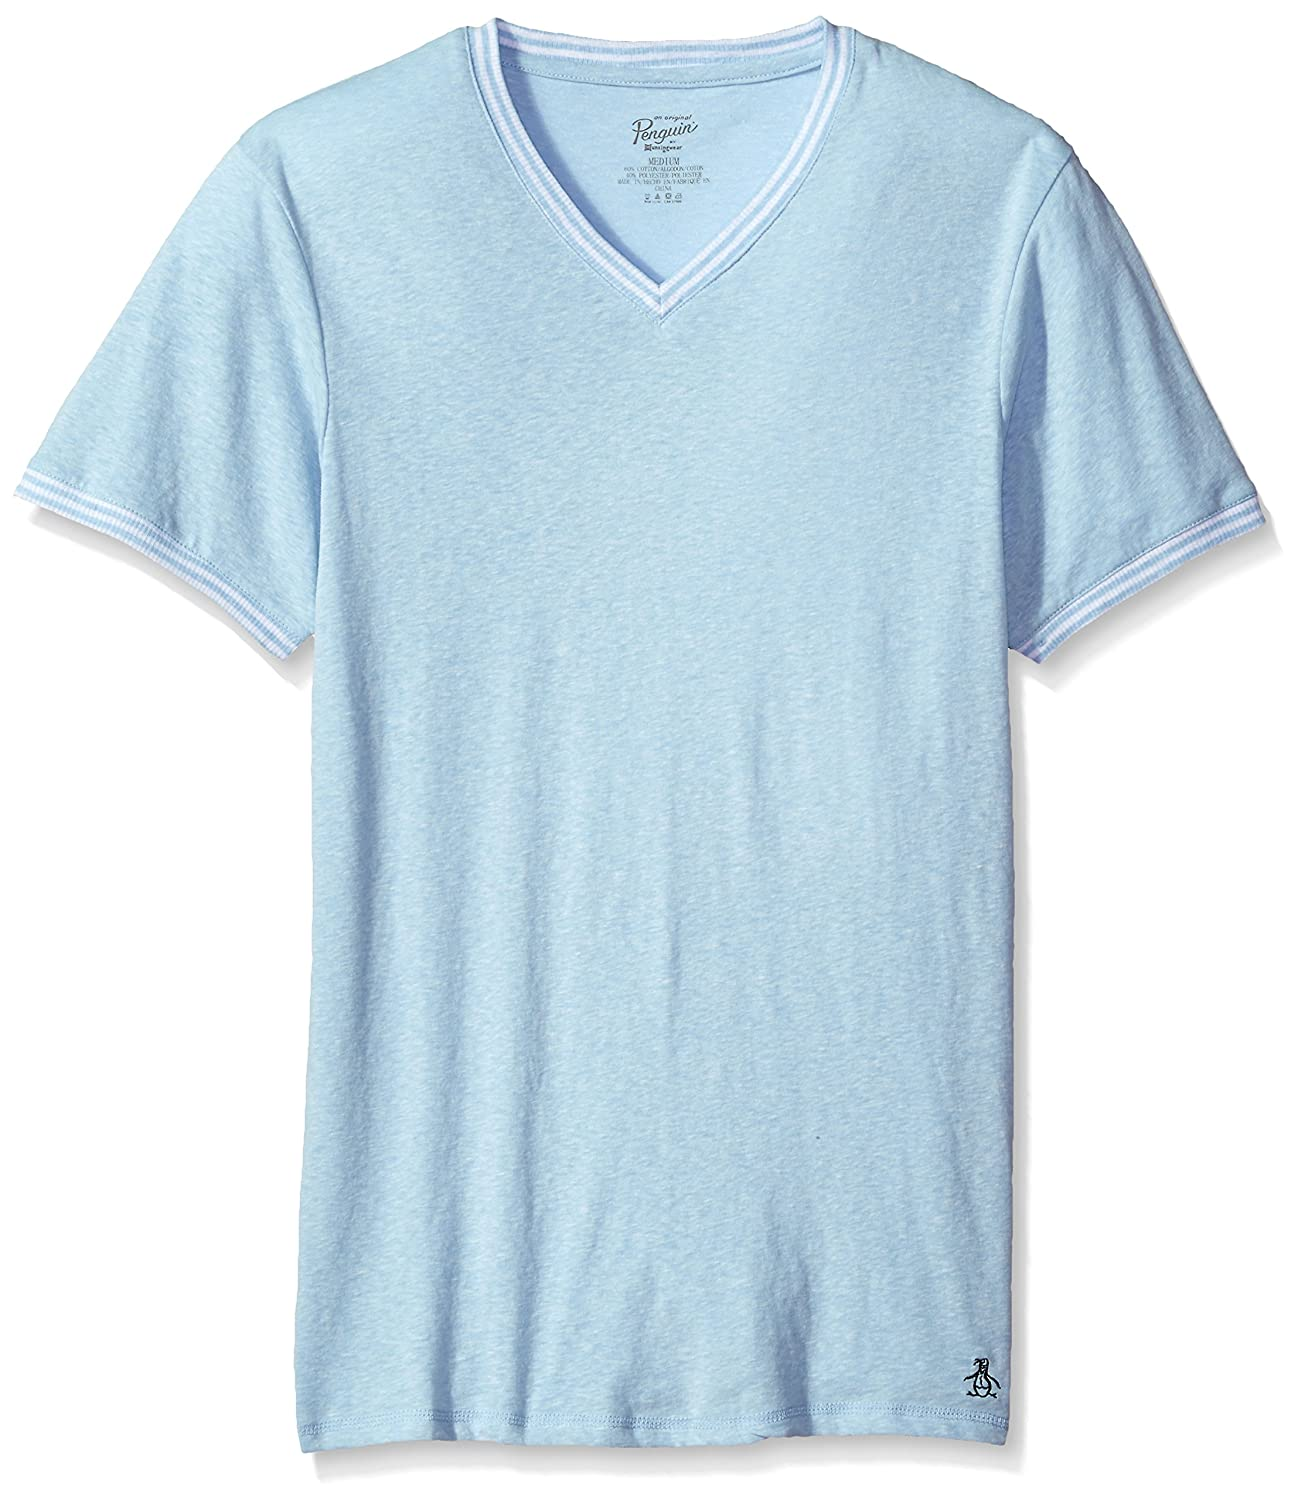 Original Penguin Men's S/S V Neck Jersey Tee RPM2201